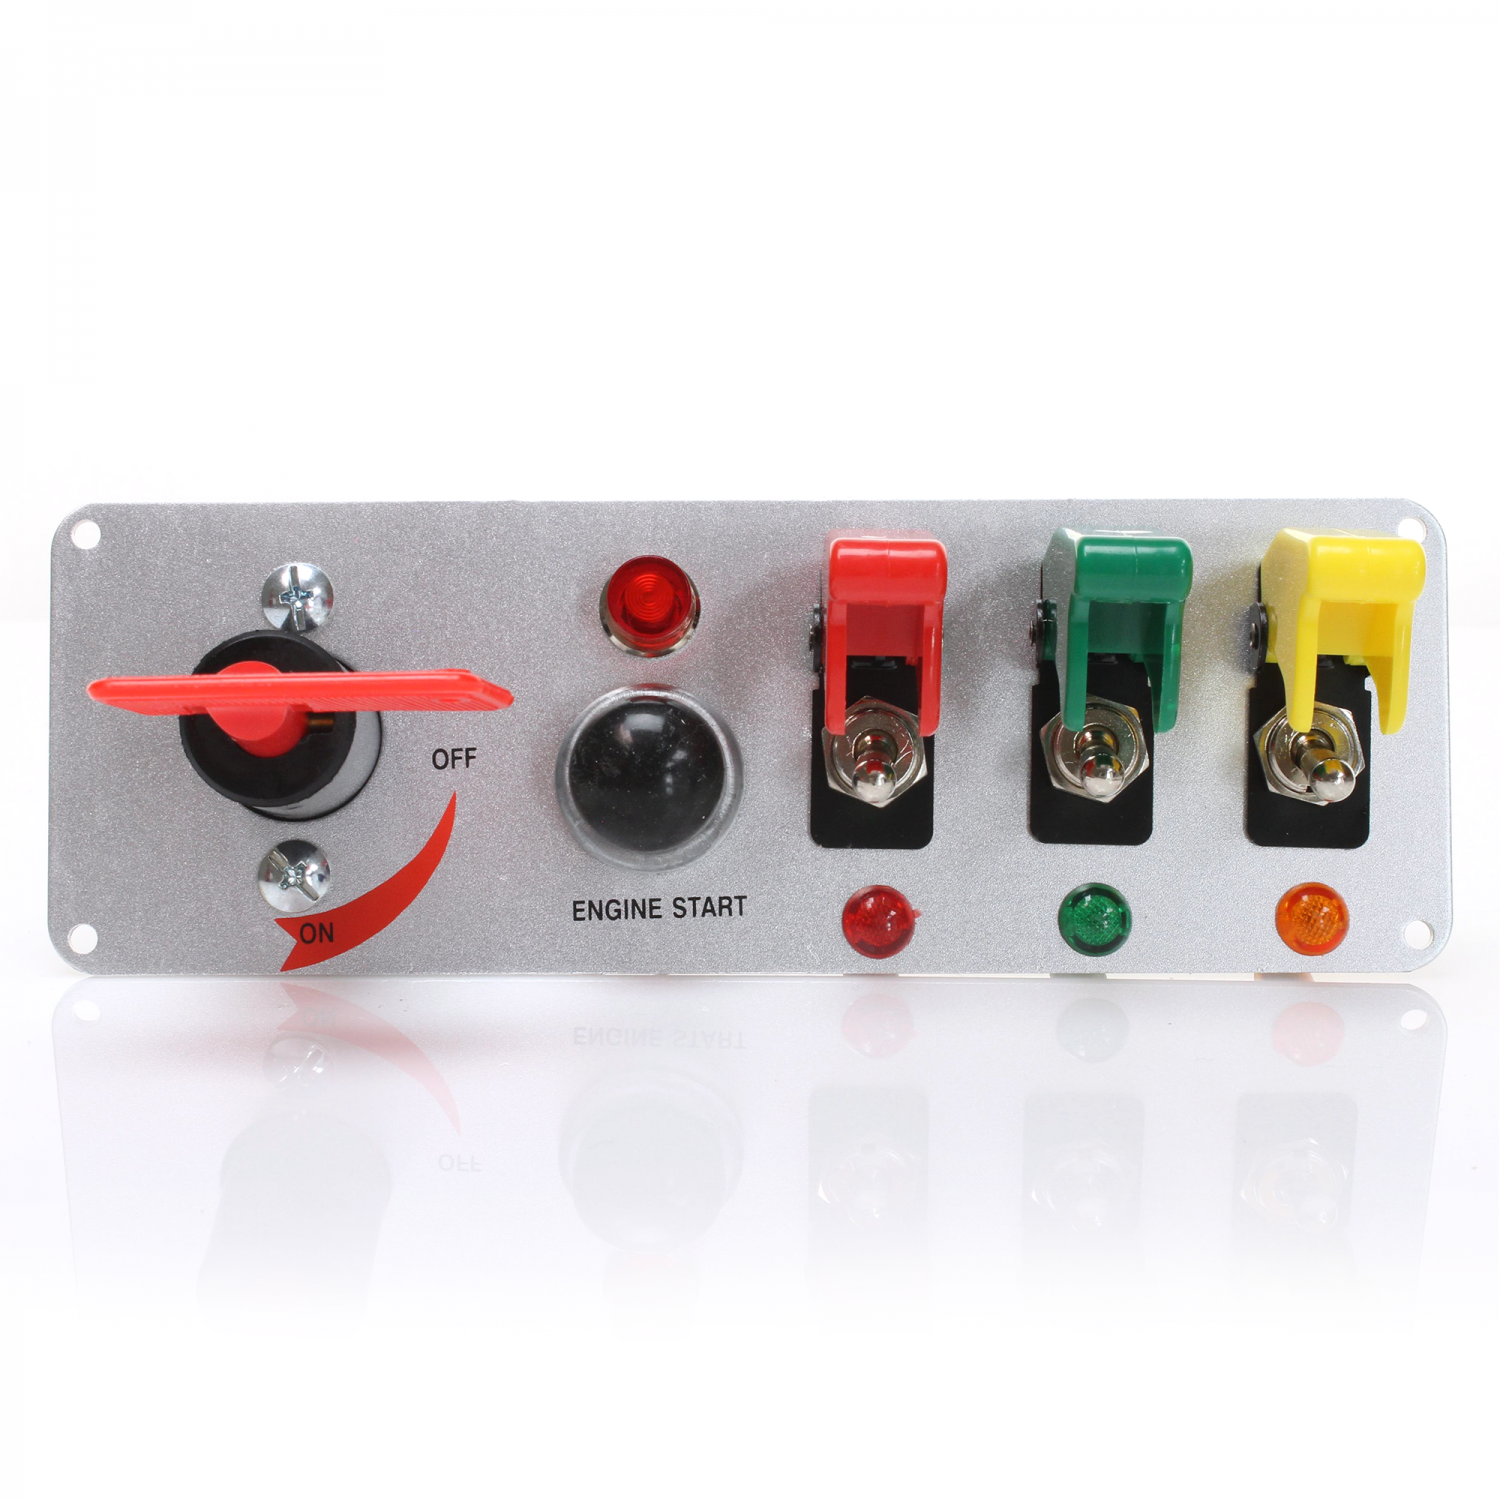 similiar race car control panels keywords engine control switch panel race car battery kill drag racing